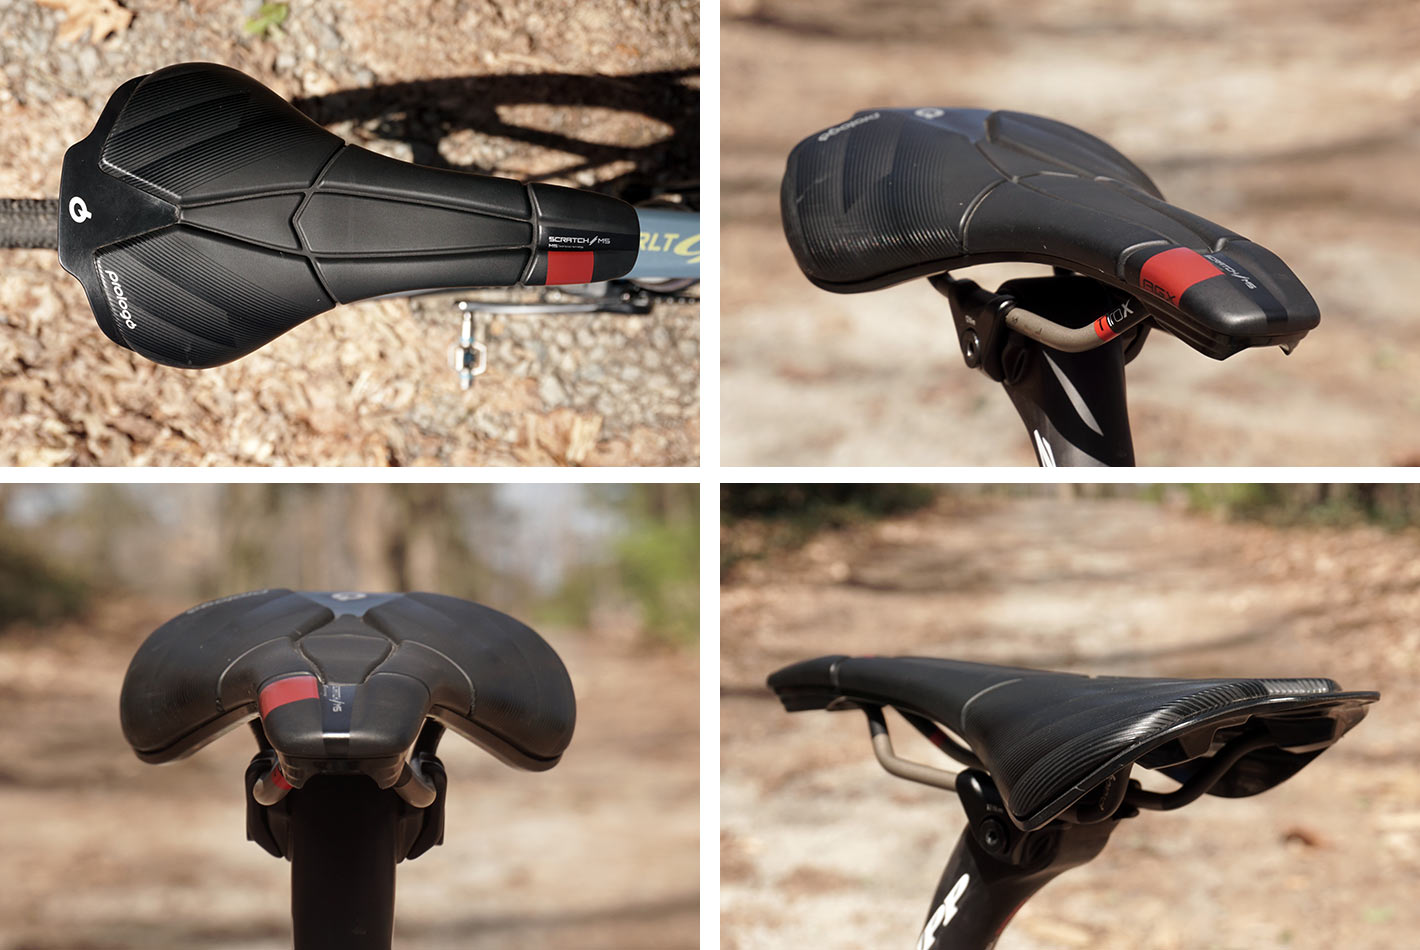 prologo scratch M5 AGX saddle profile shown from different angles